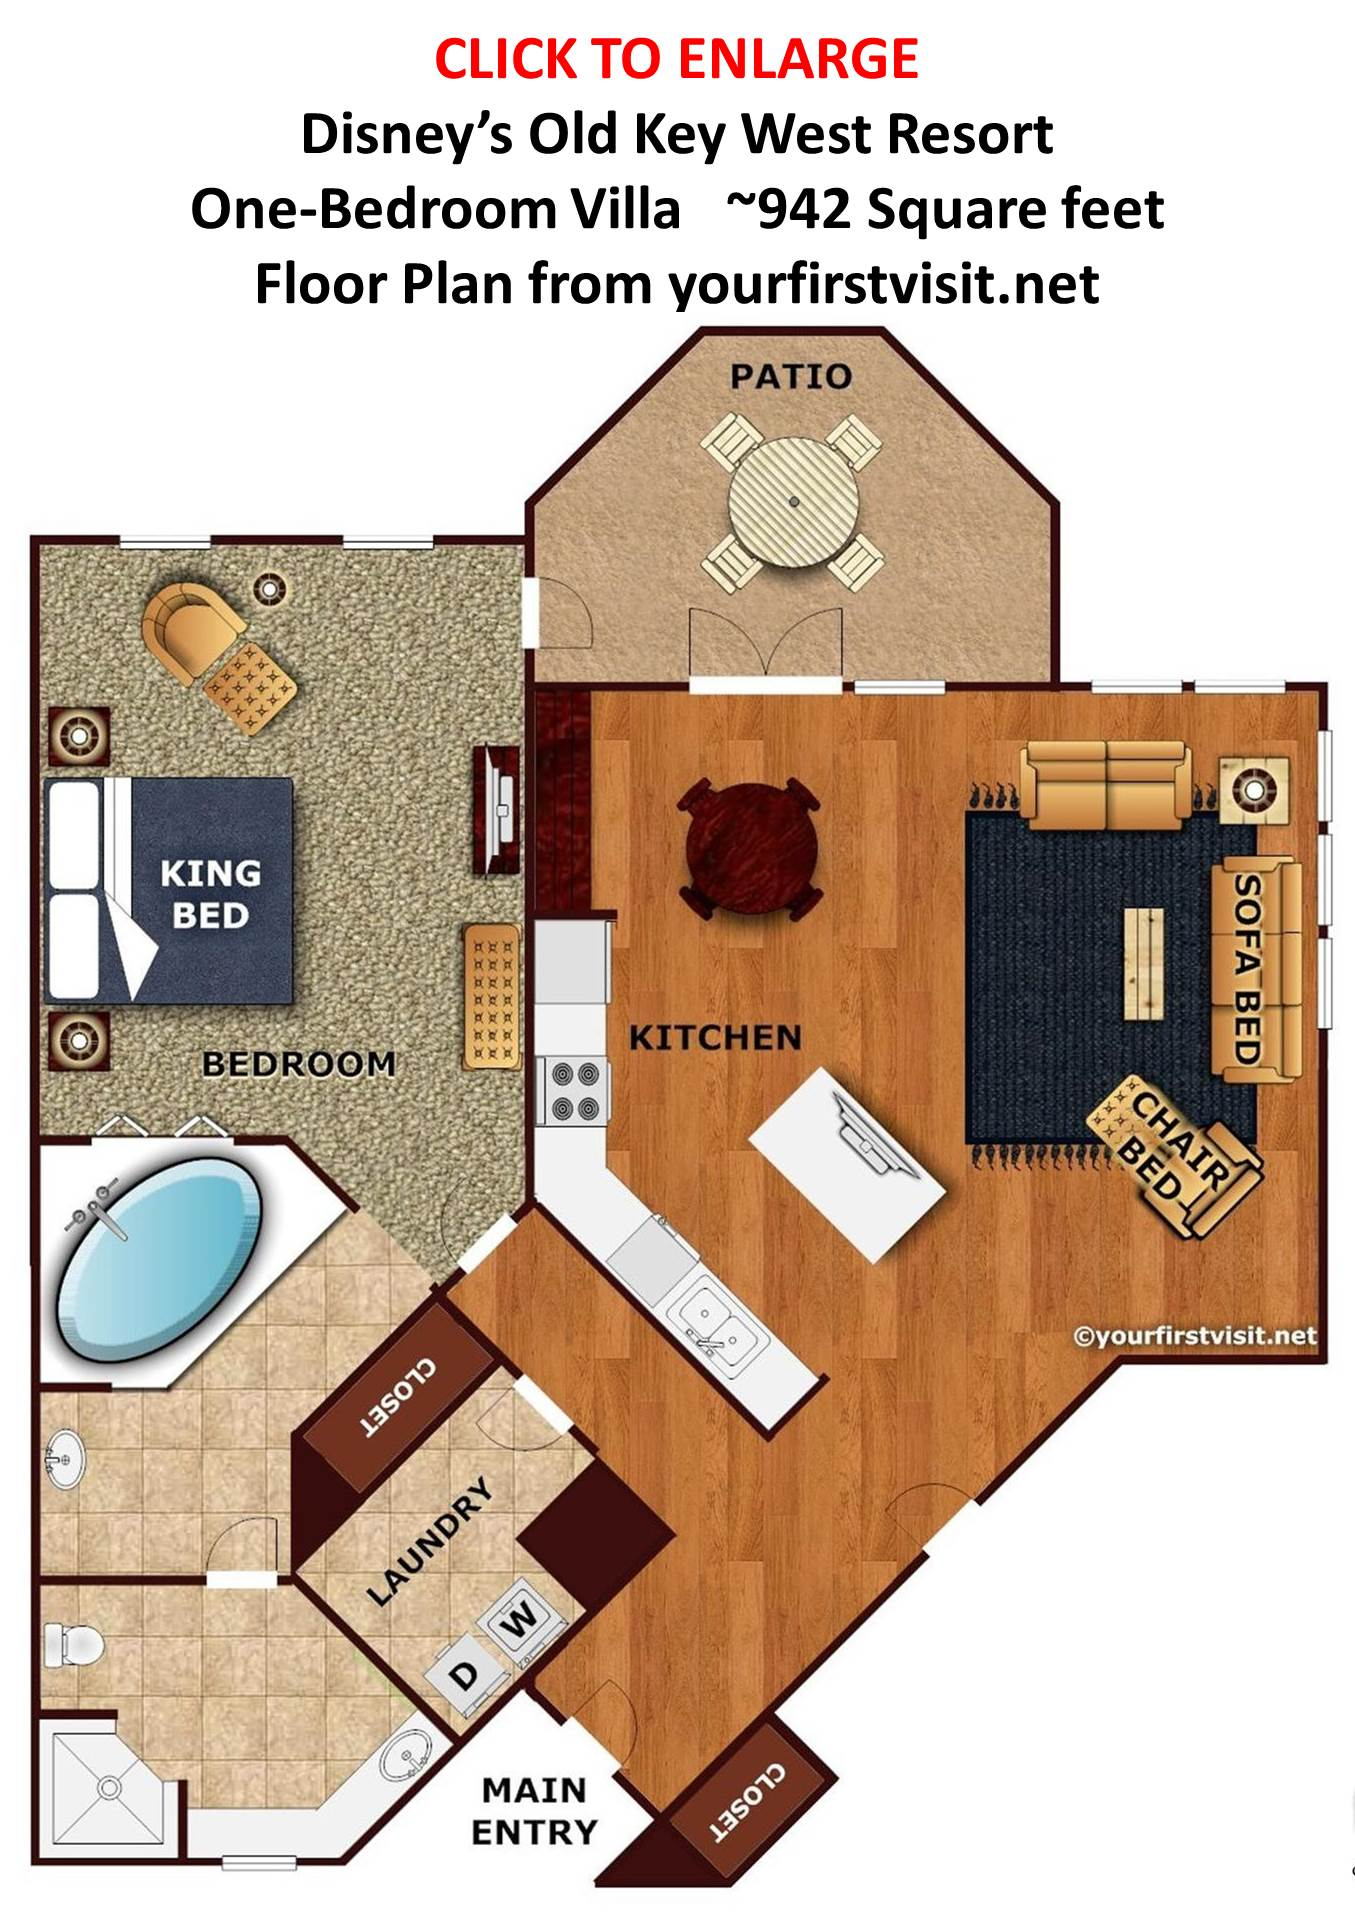 One Bedroom Villa Floor Plan Disney's Old Key West Resort from yourfirstvisit.net